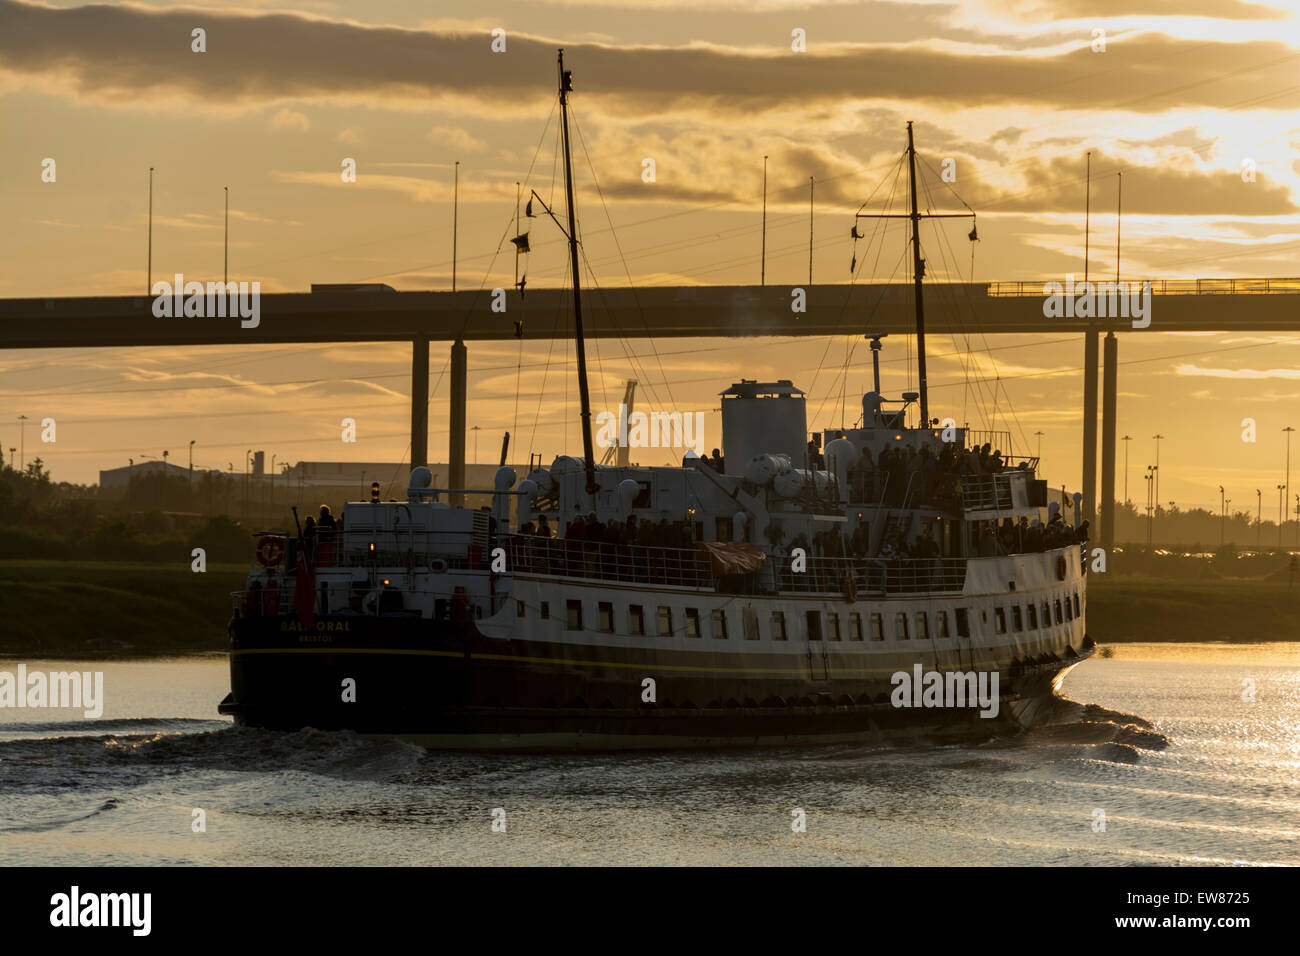 Cumberland Basin, Bristol, UK. 19th June 2015. The MV Balmoral has been out of action for 3 years, undergoing restoration - Stock Image